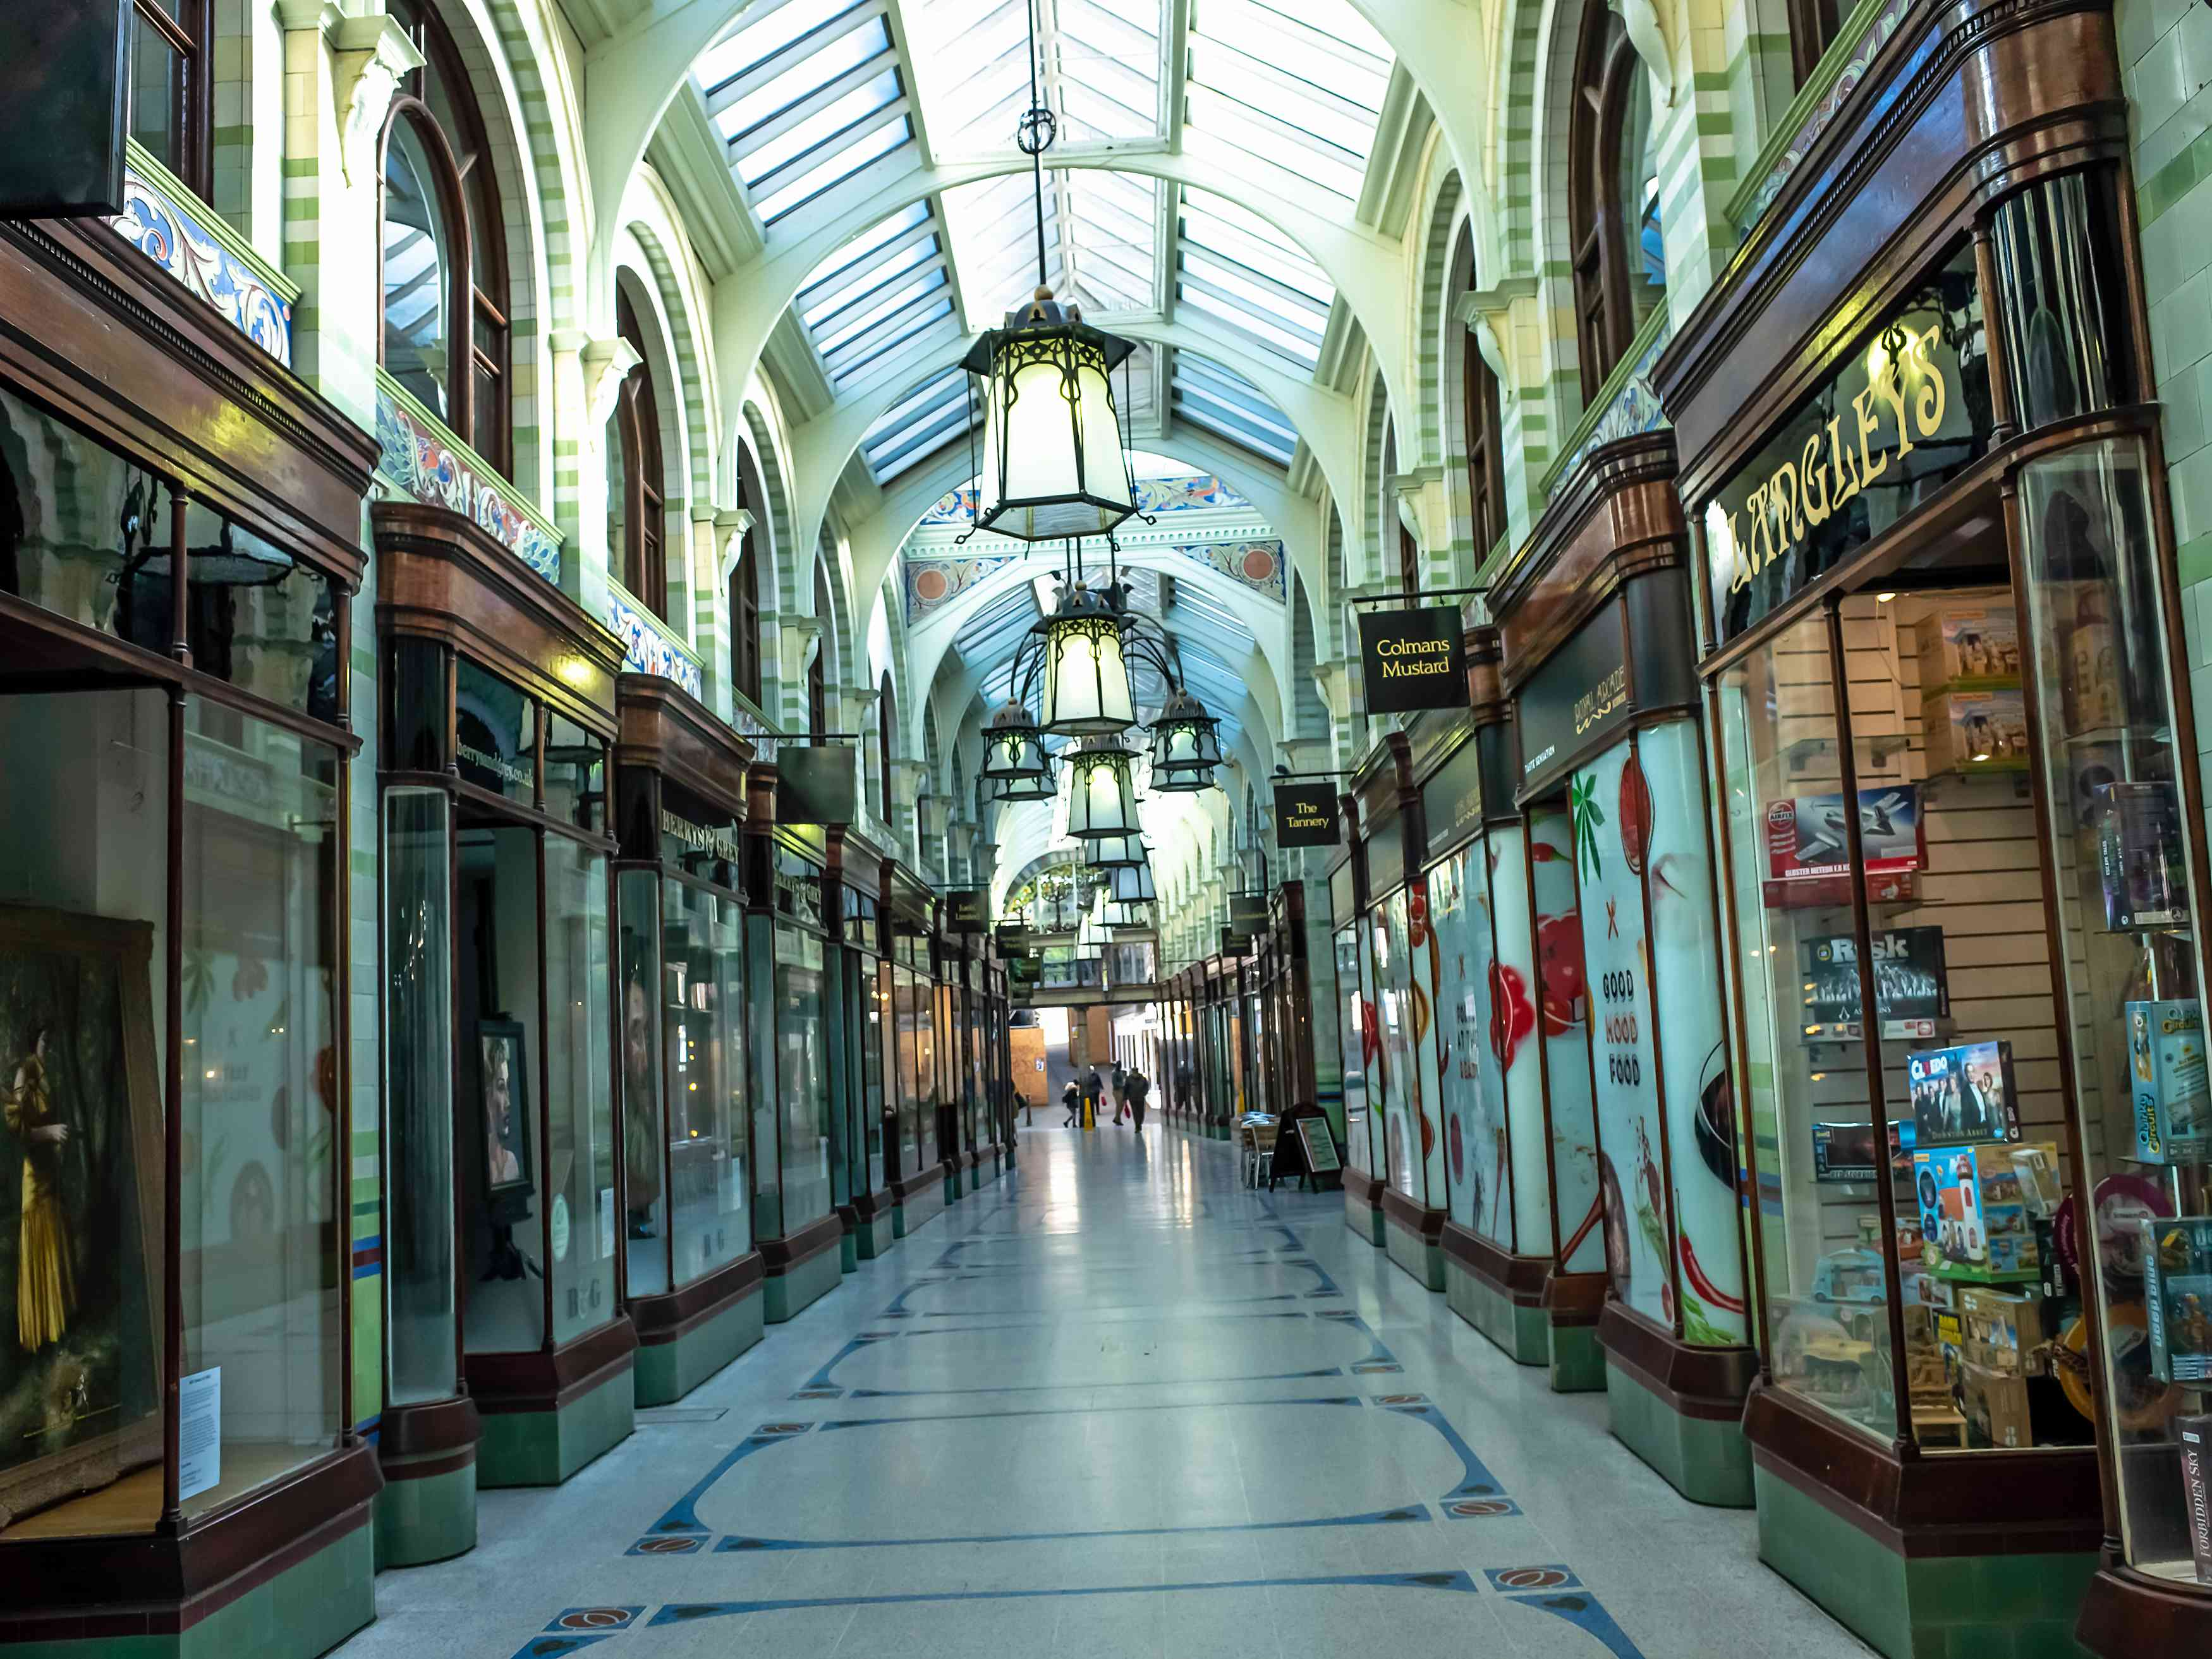 The inside of the Royal Arcade, a Victorian shopping centre, in the city of Norwich